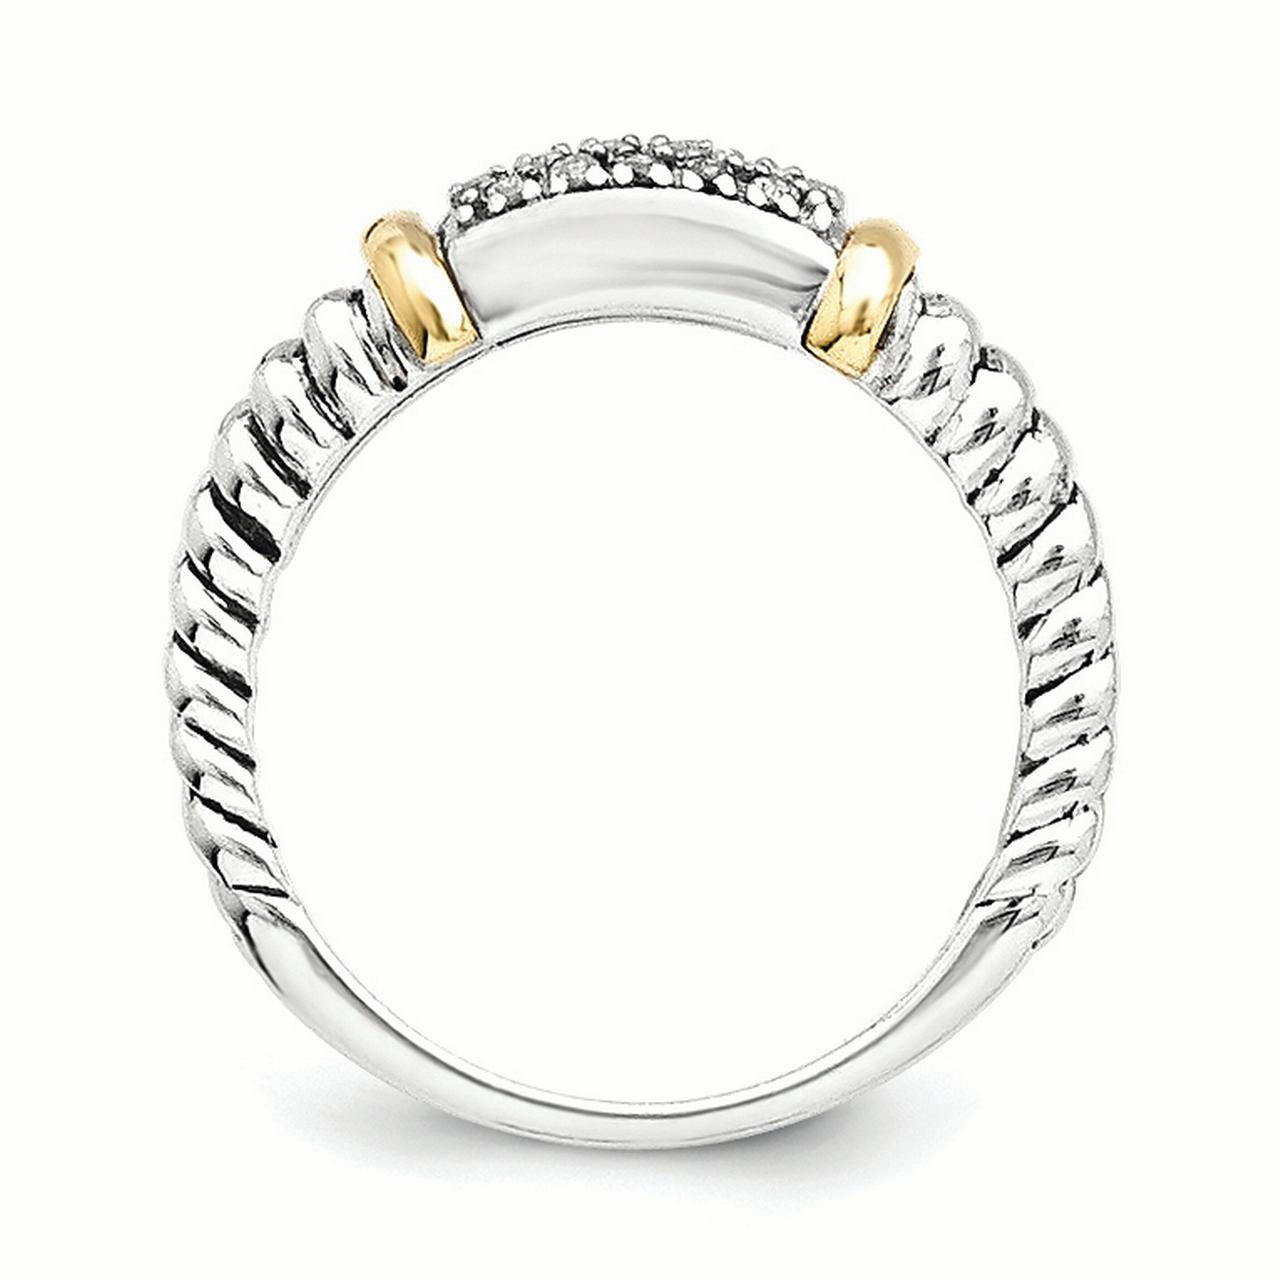 Sterling Silver Two Tone Silver And Gold Plated Sterling Silver w/Diamond Ring - image 2 of 3